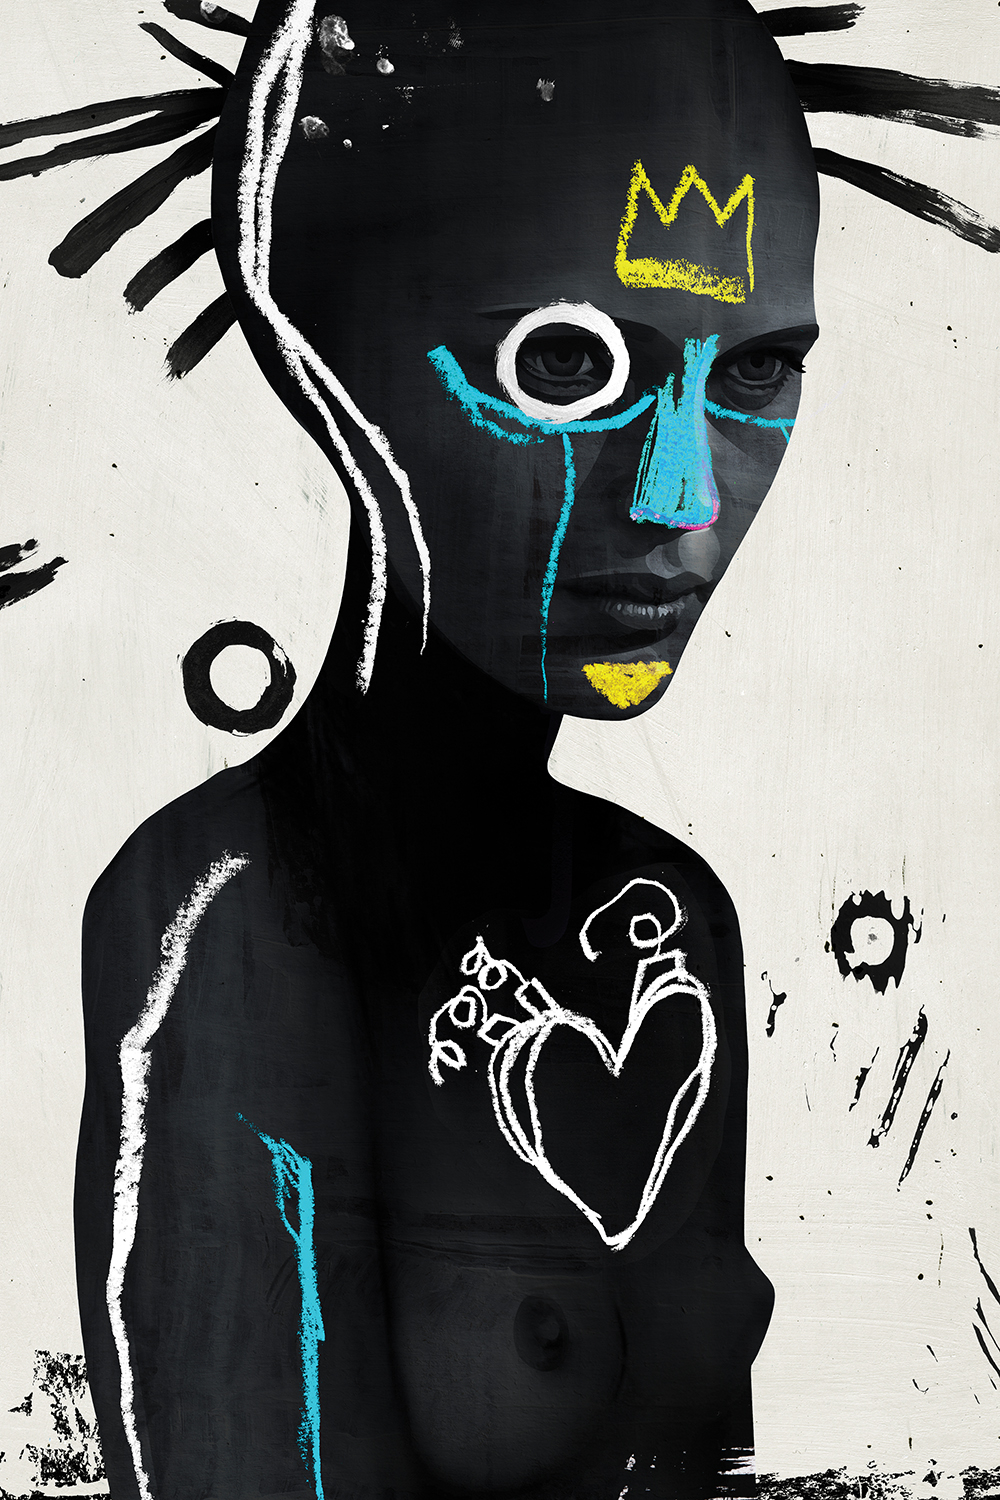 a woman shadowed in black with bright white, yellow, and blue markings painted on her